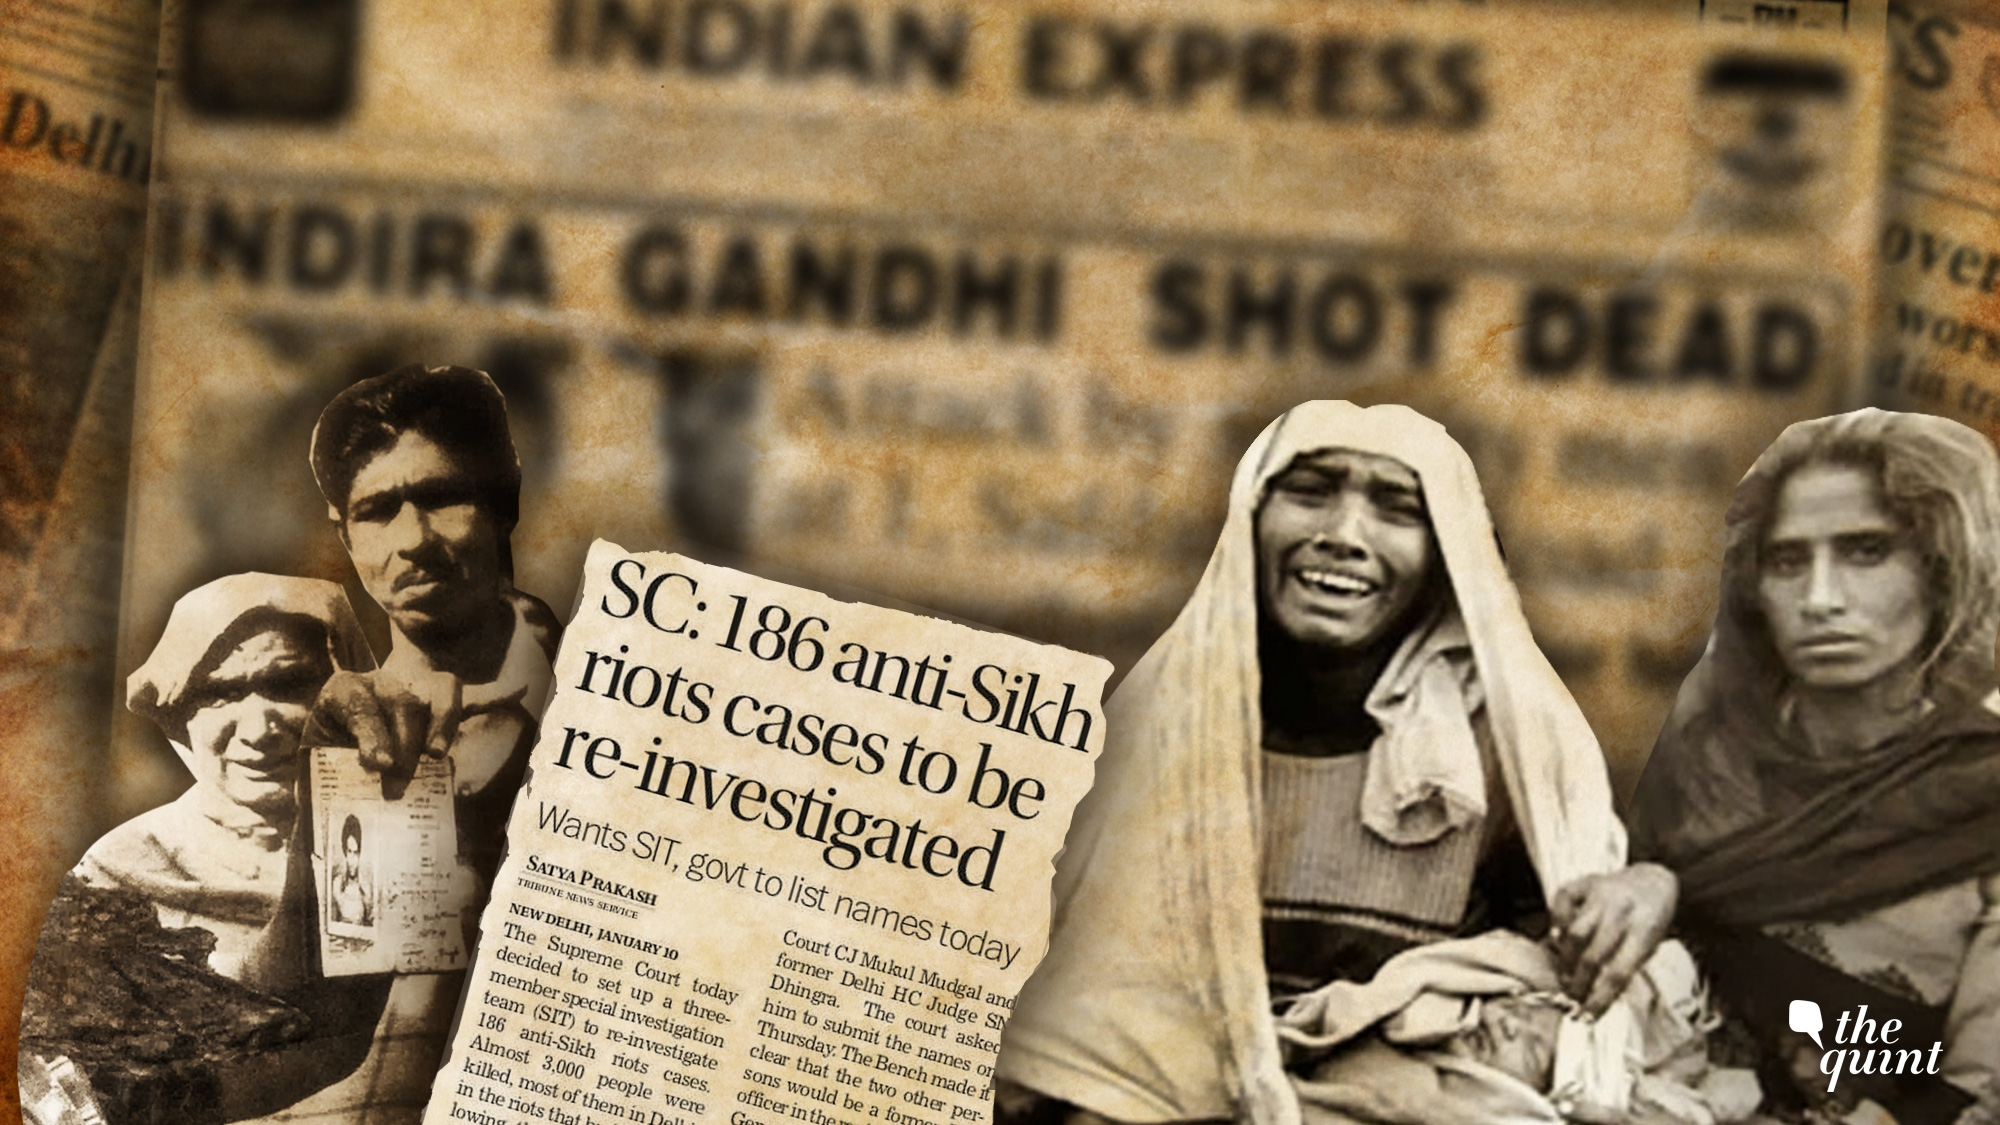 the 1984 anti sikh riots 2 days ago  massive controversy was caused on monday as the congress fielded 1984 anti- sikh riots accused sajjan kumar to lead protests at new.